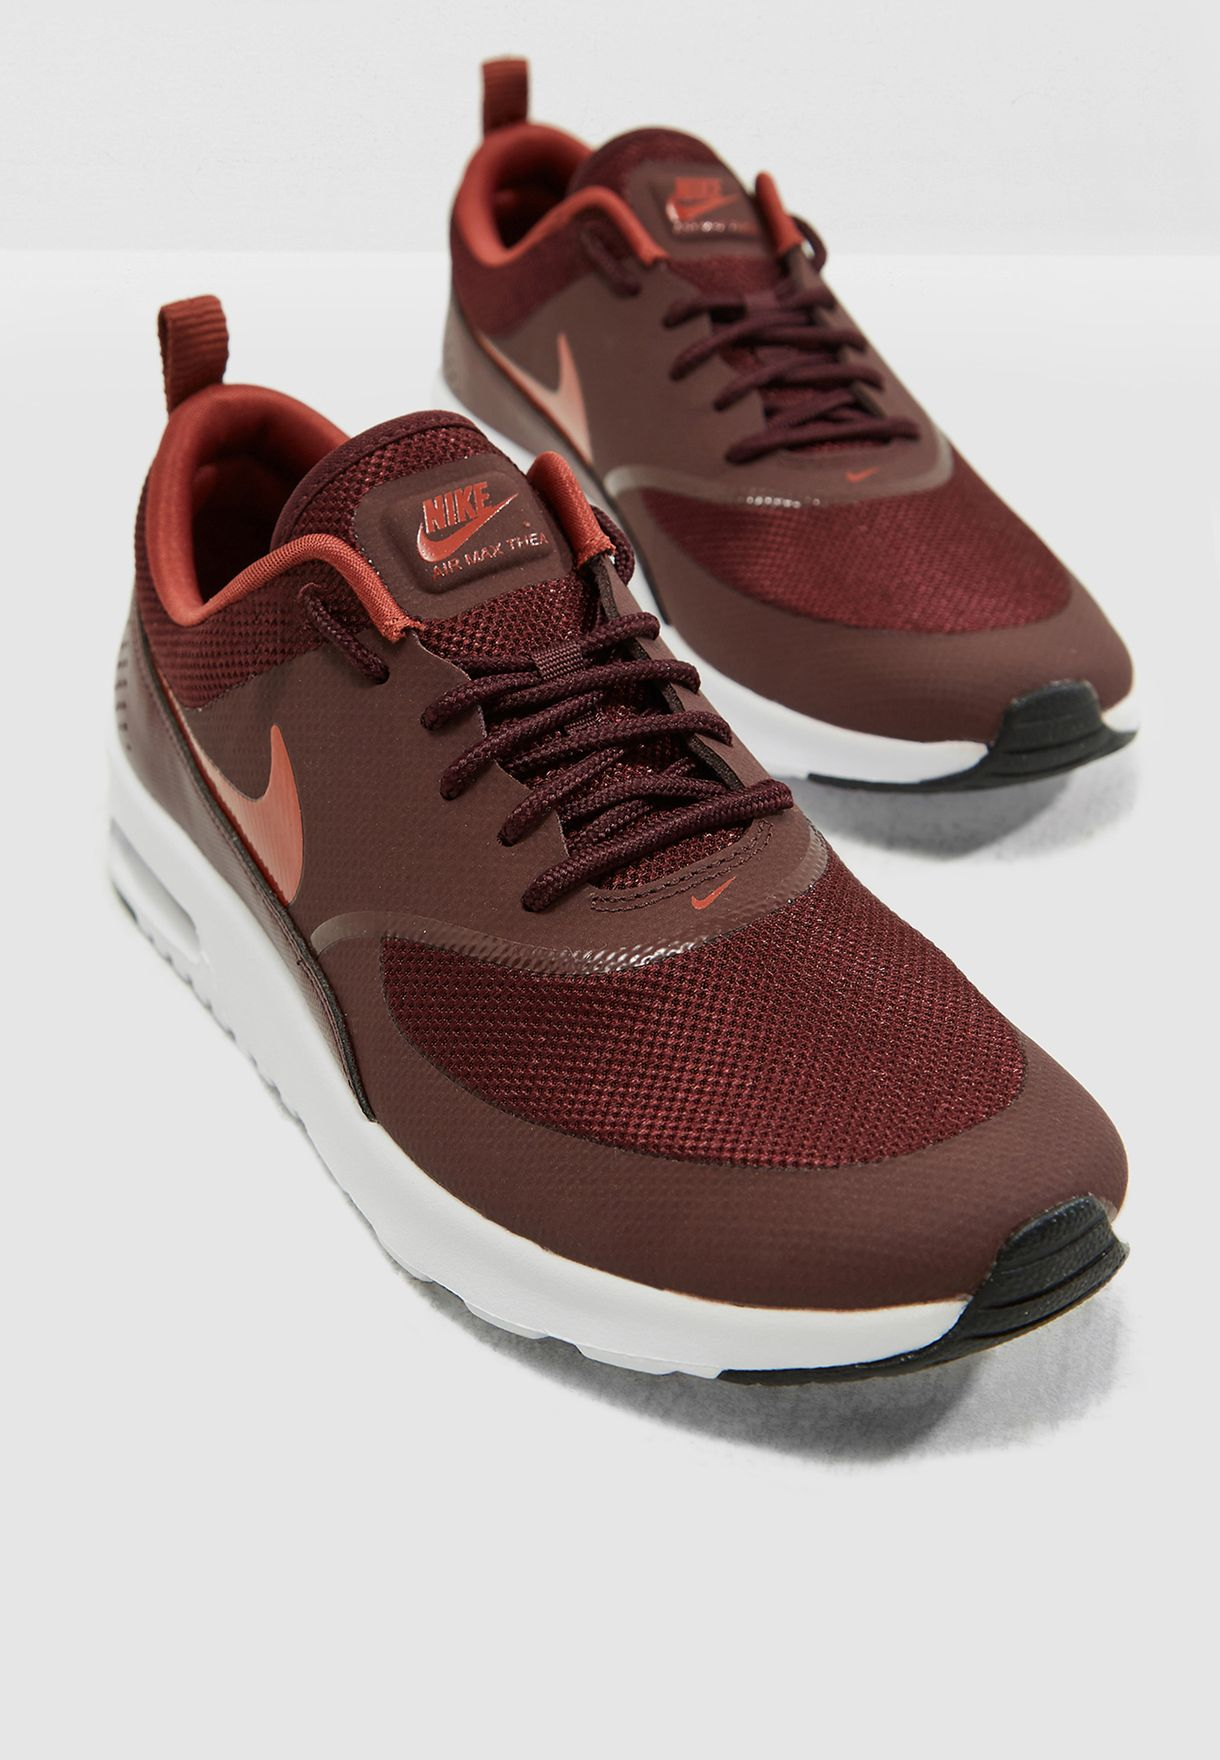 separation shoes 3a6fe 95f05 Shop Nike burgundy Air Max Thea 599409-615 for Women in Saudi ...